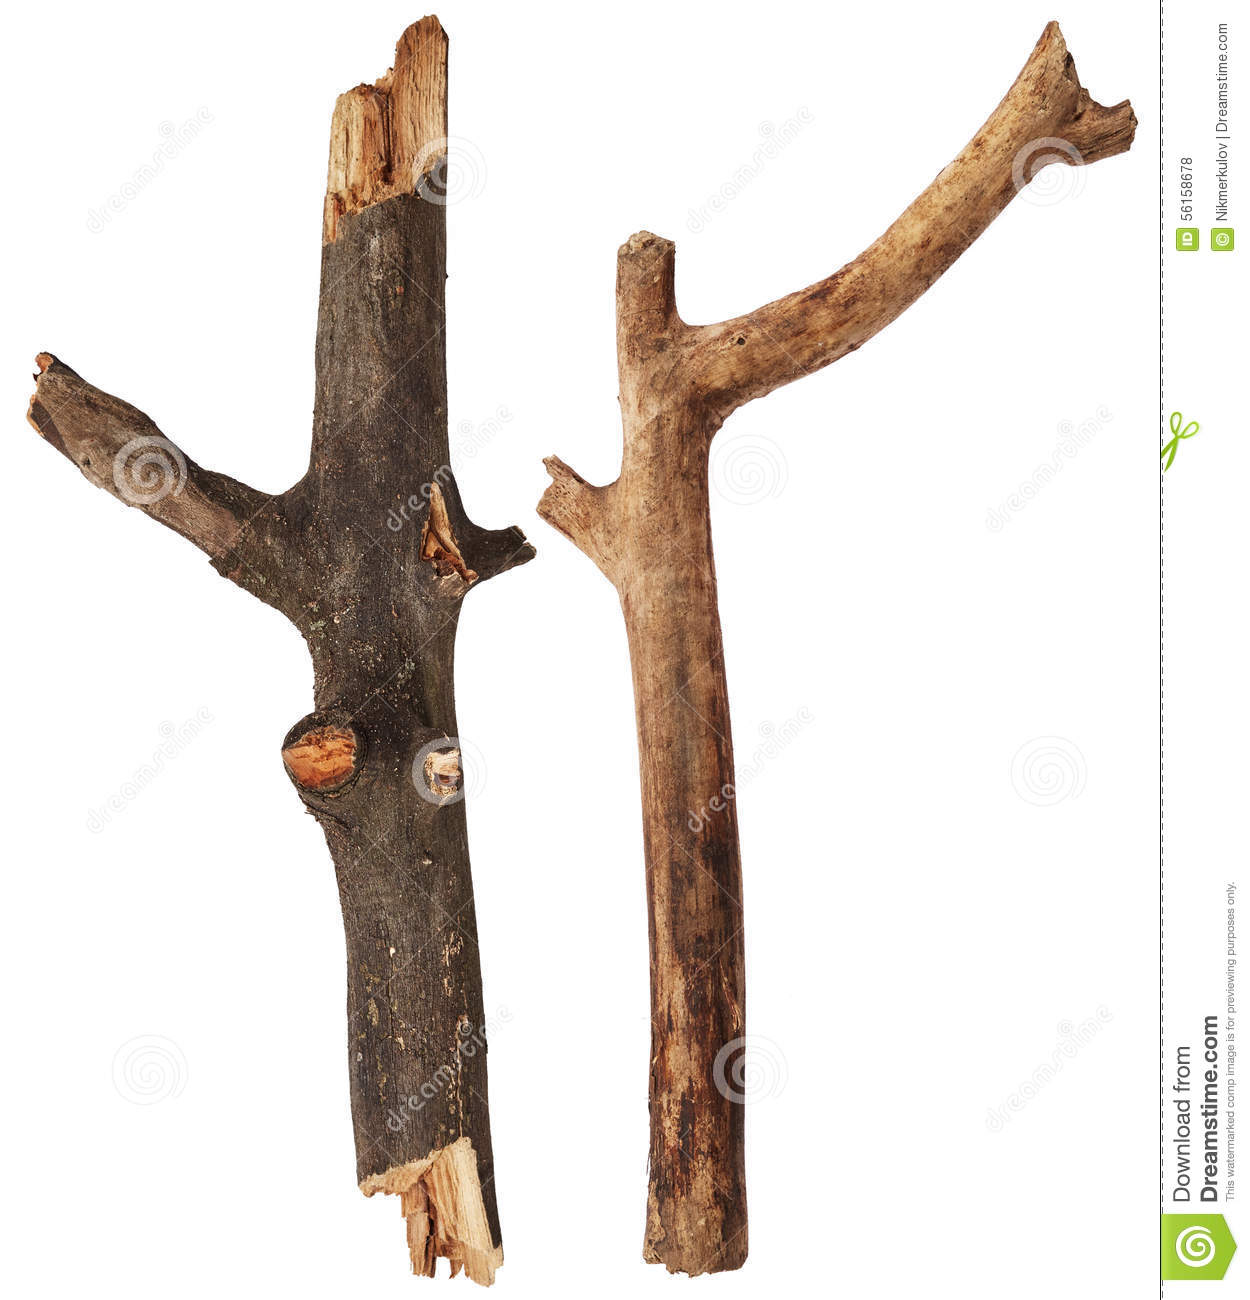 Broken Tree Branches Stock Photo - Image: 56158678